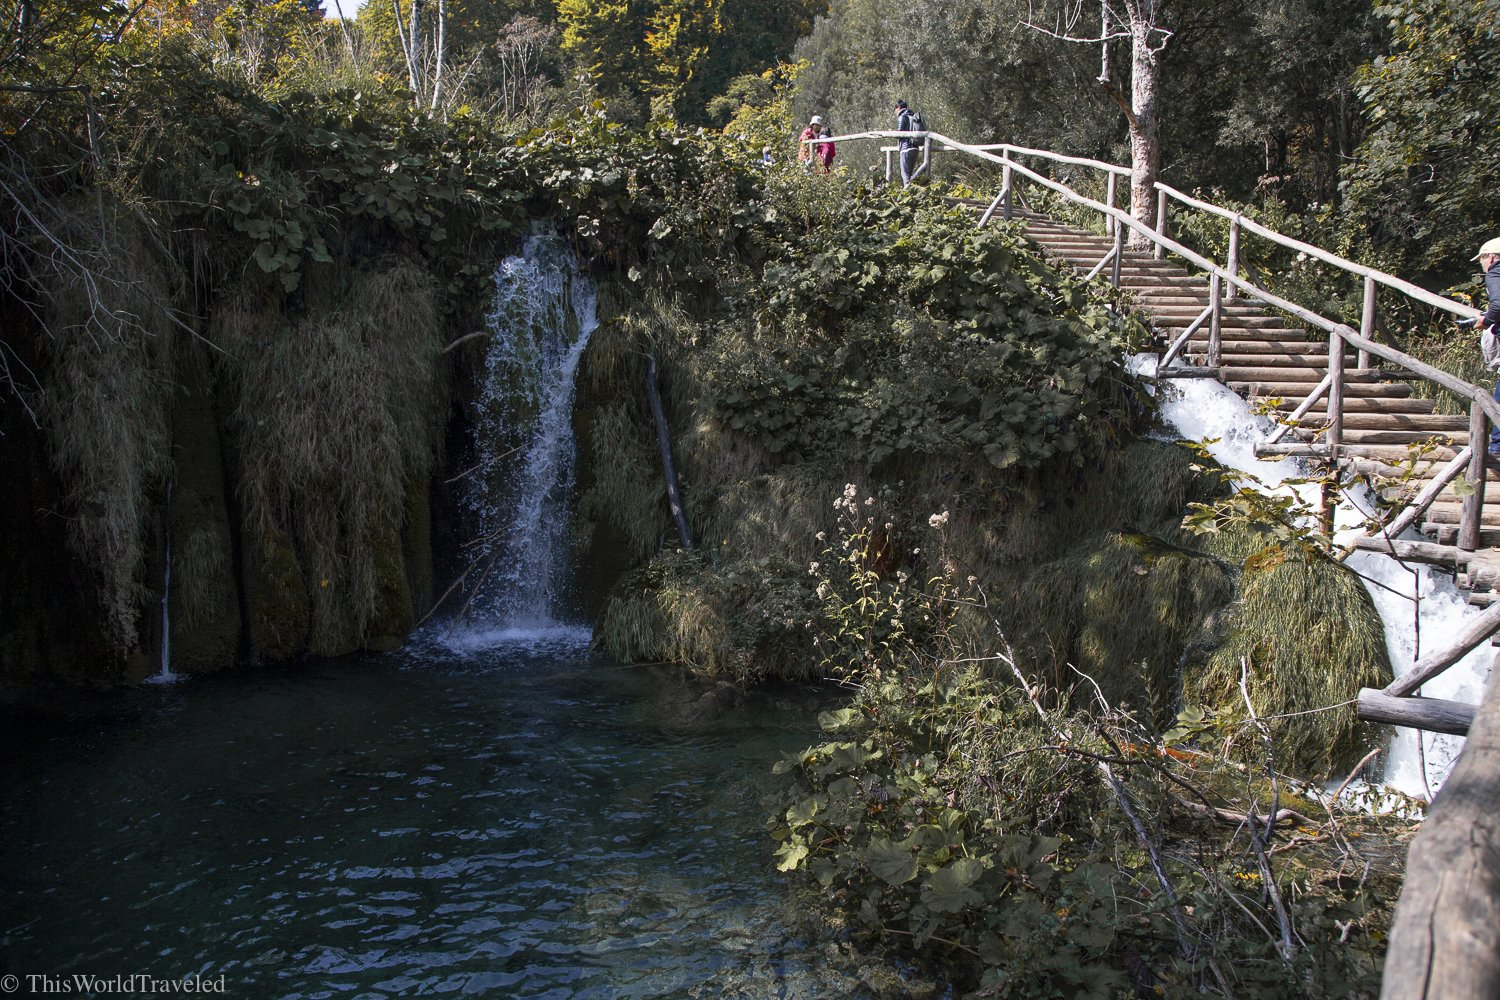 A waterfall in Plitvice Lakes National Park surrounded by green trees and a boardwalk